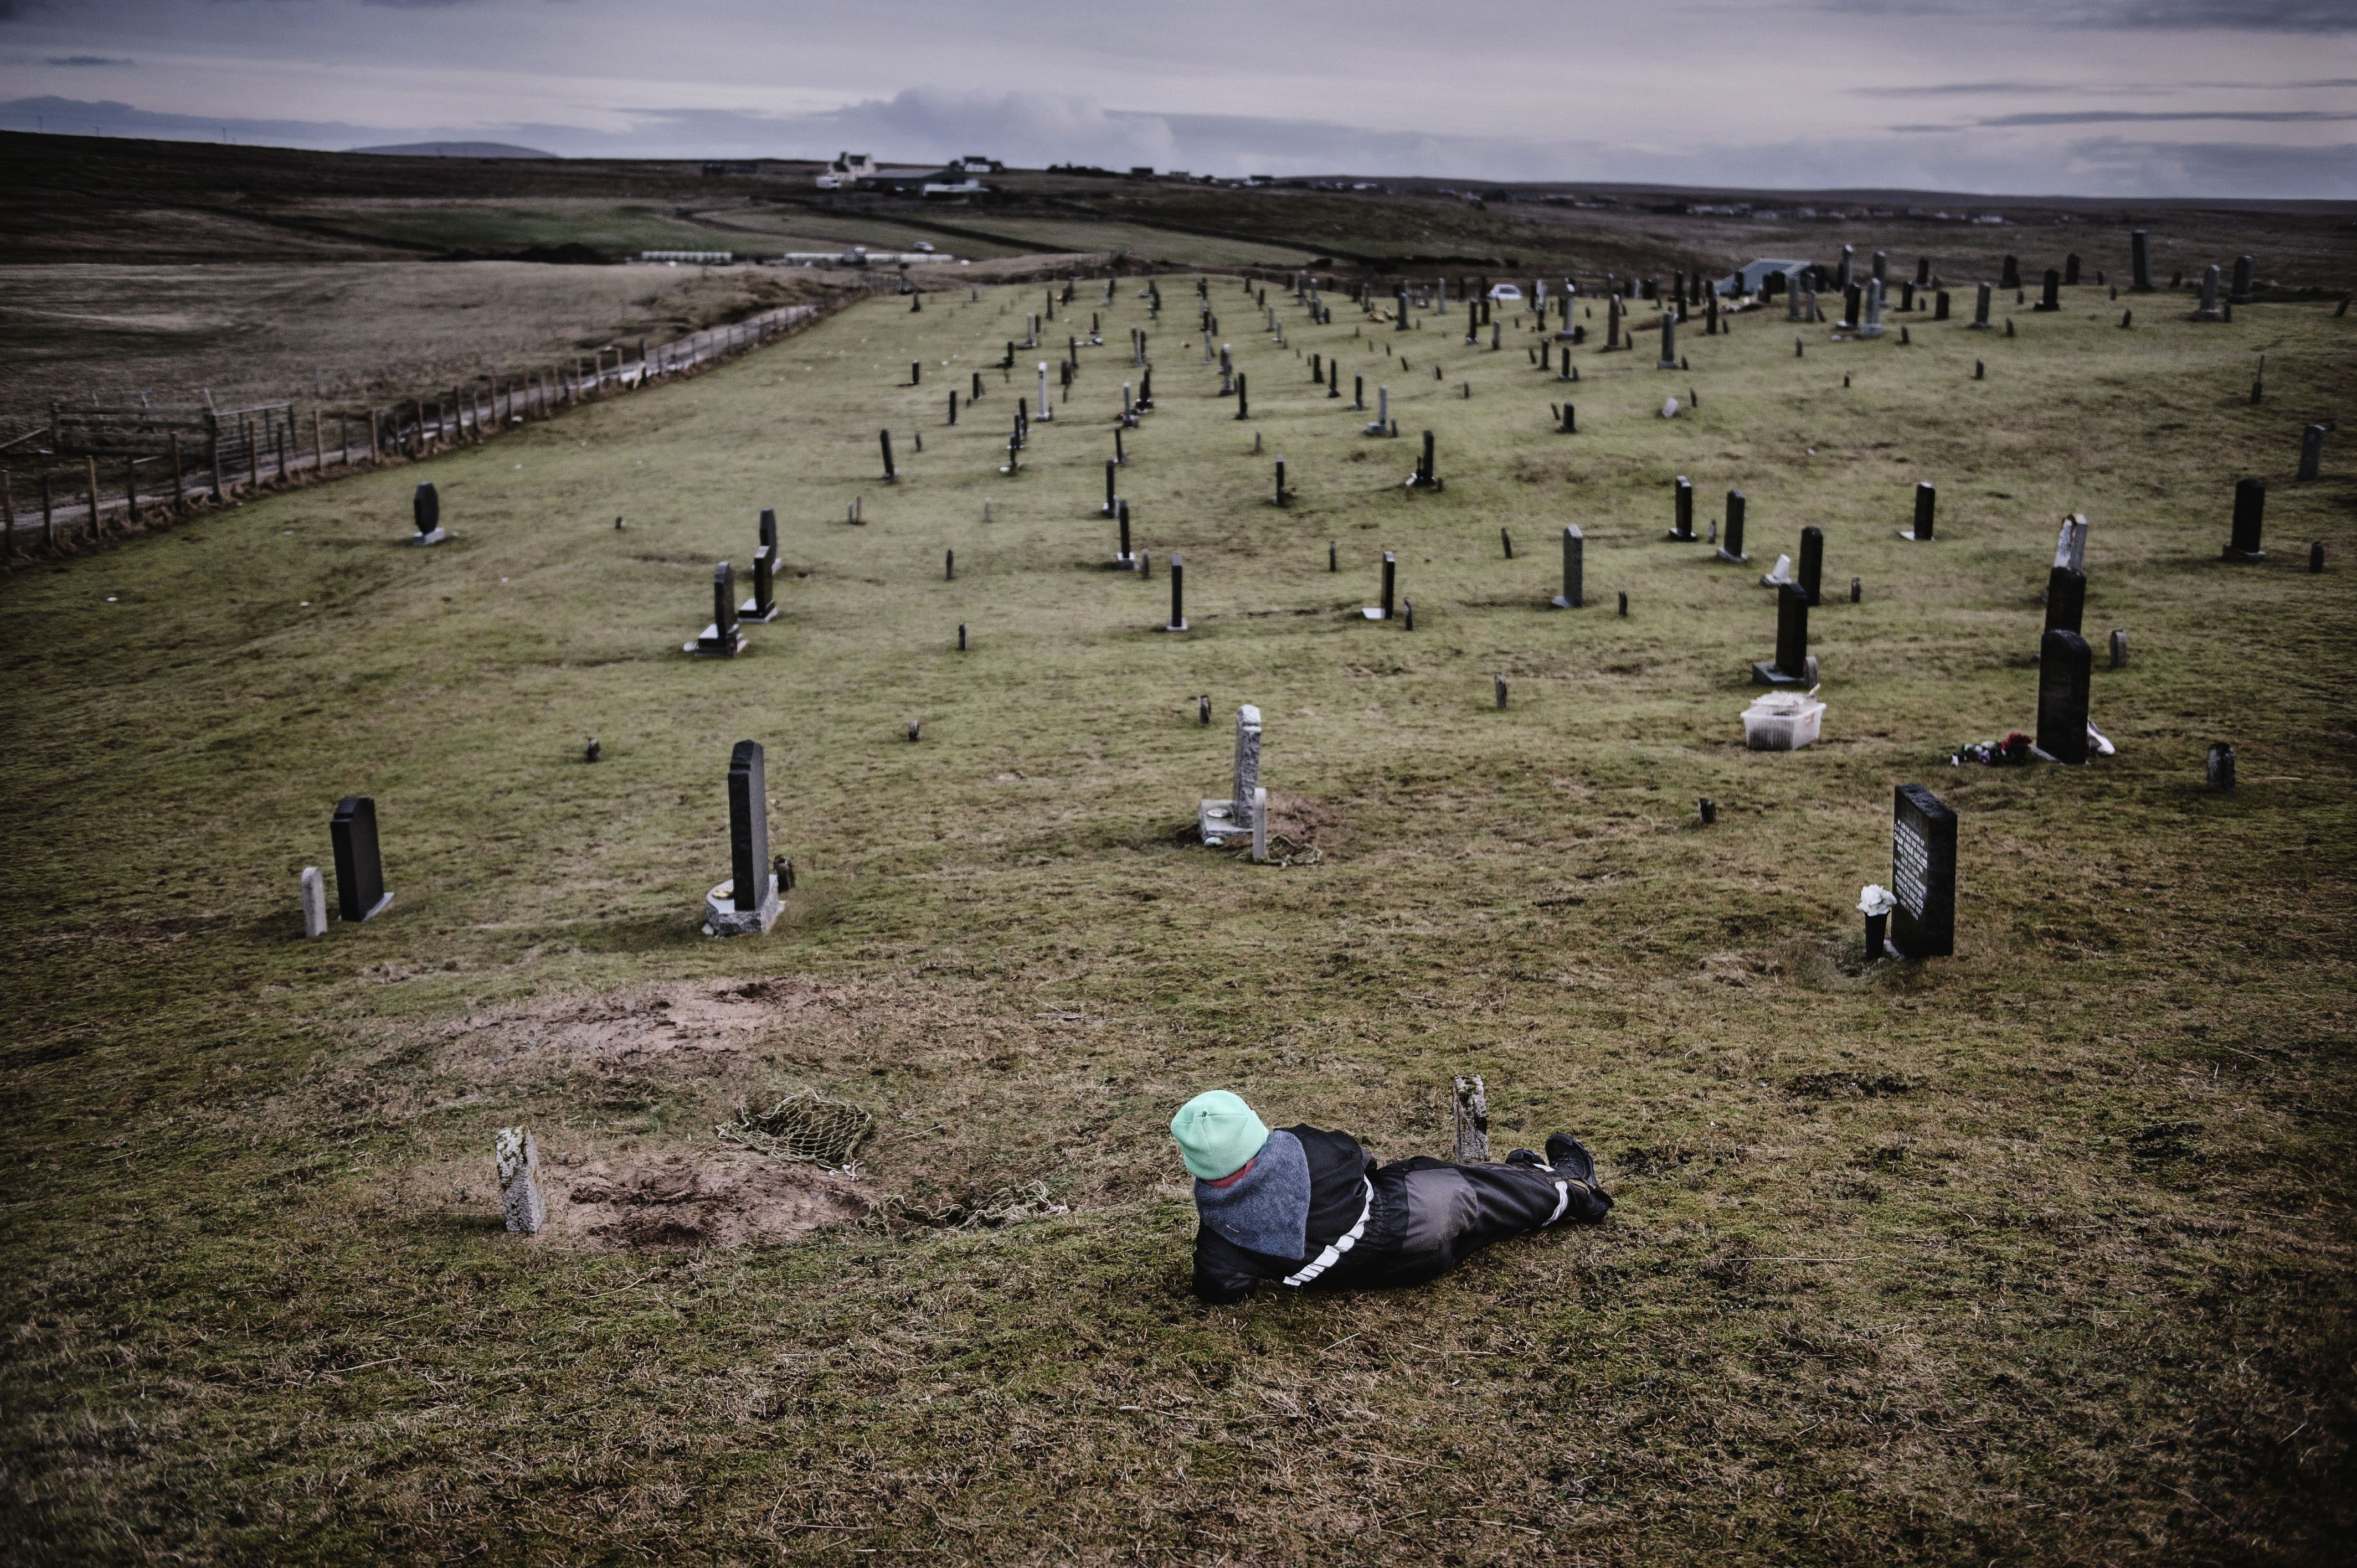 World Photography Organisation: 3rd Place, 'At The End Of The Day' By Laetitia Vançon